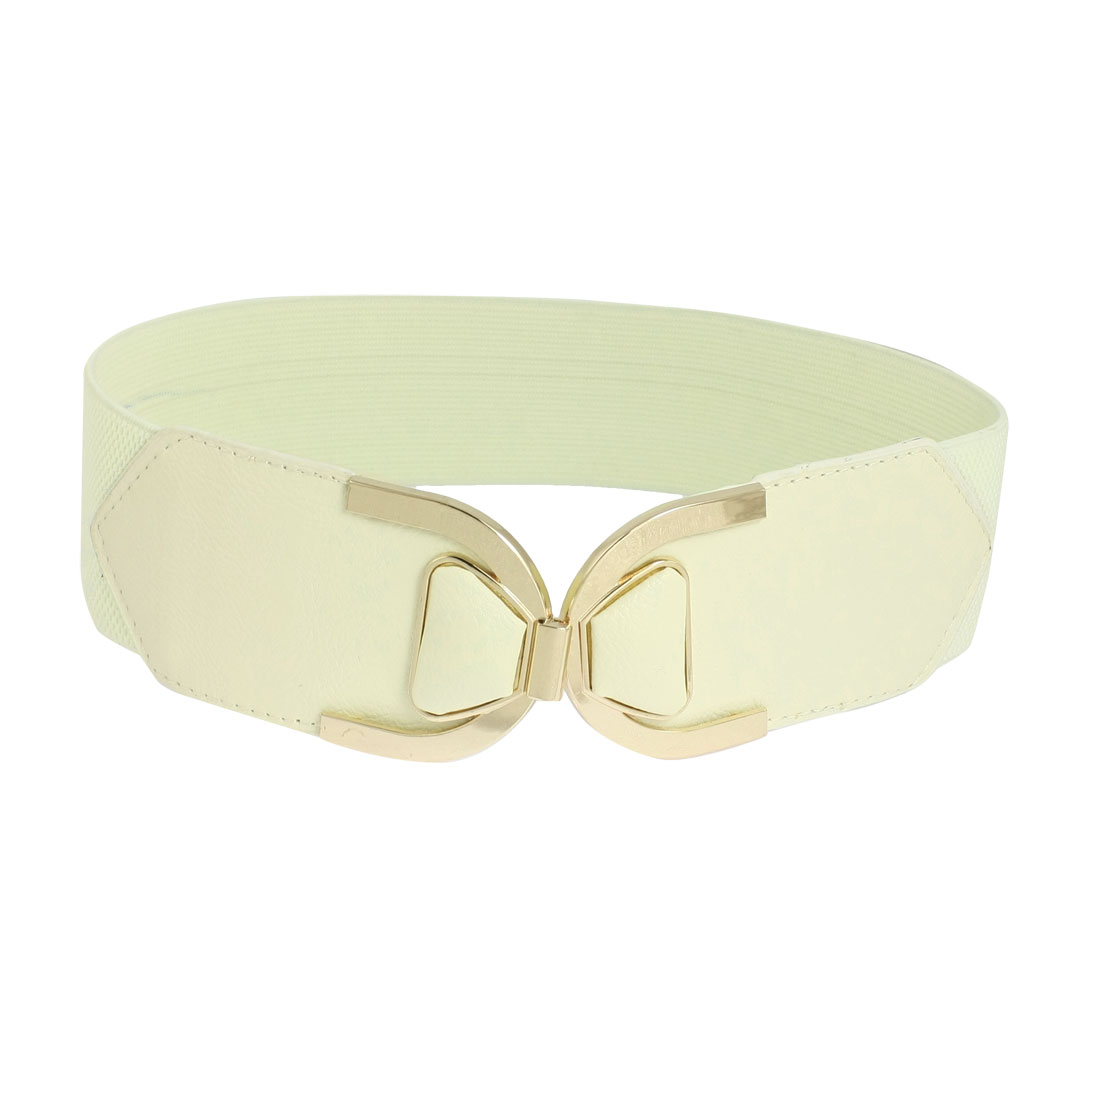 Beige Faux Leather Elastic Cinch Band Waist Belt for Woman